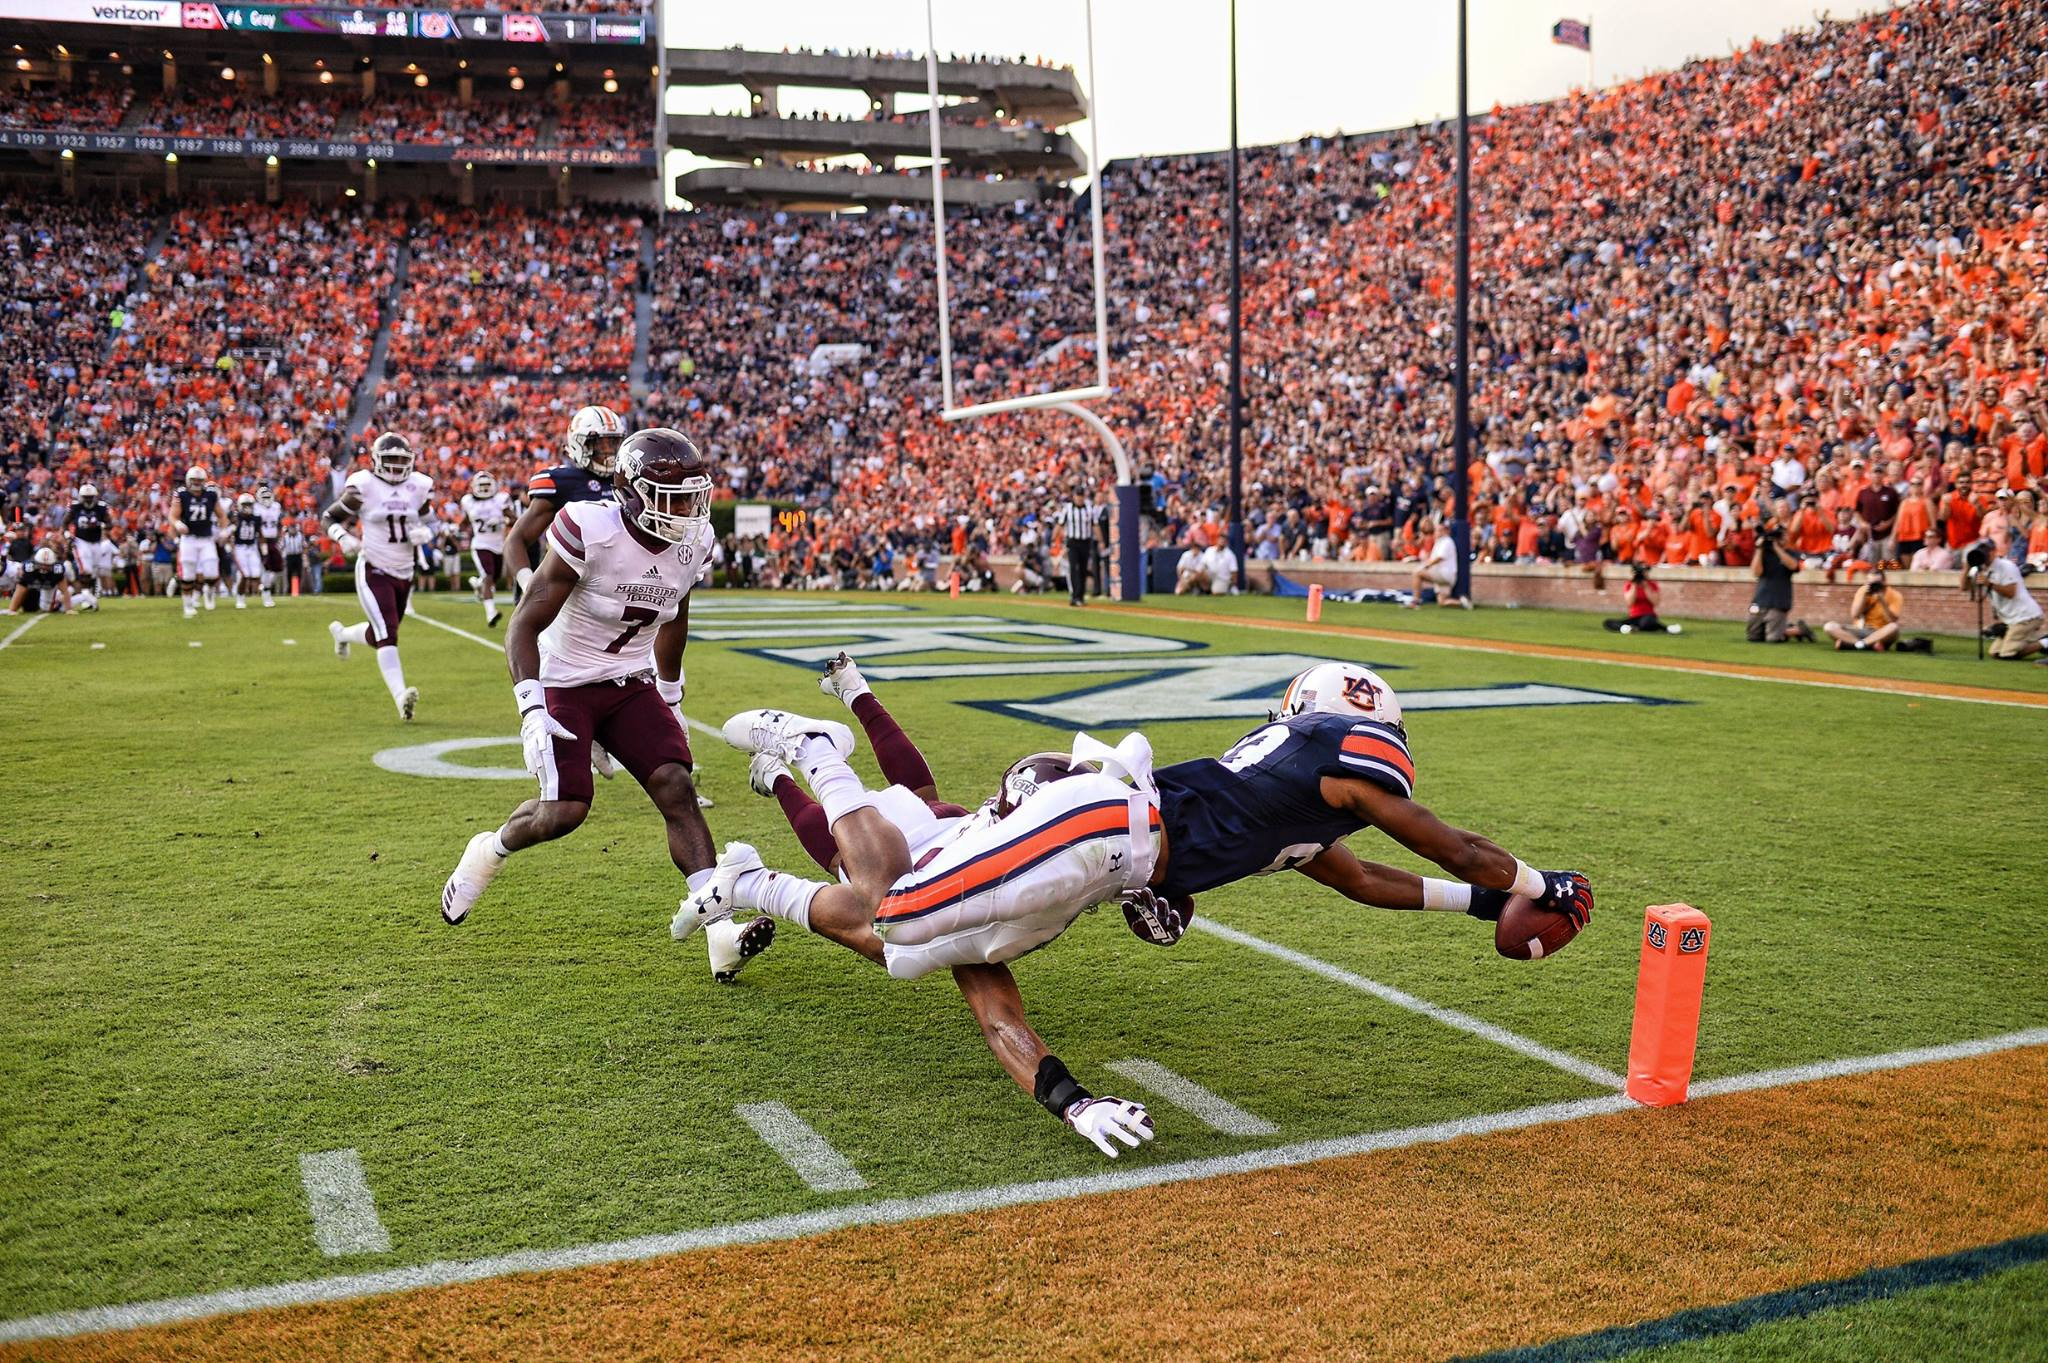 ROUT 66: 'Bama rides over Ole Miss, tying a school record for points score in a game